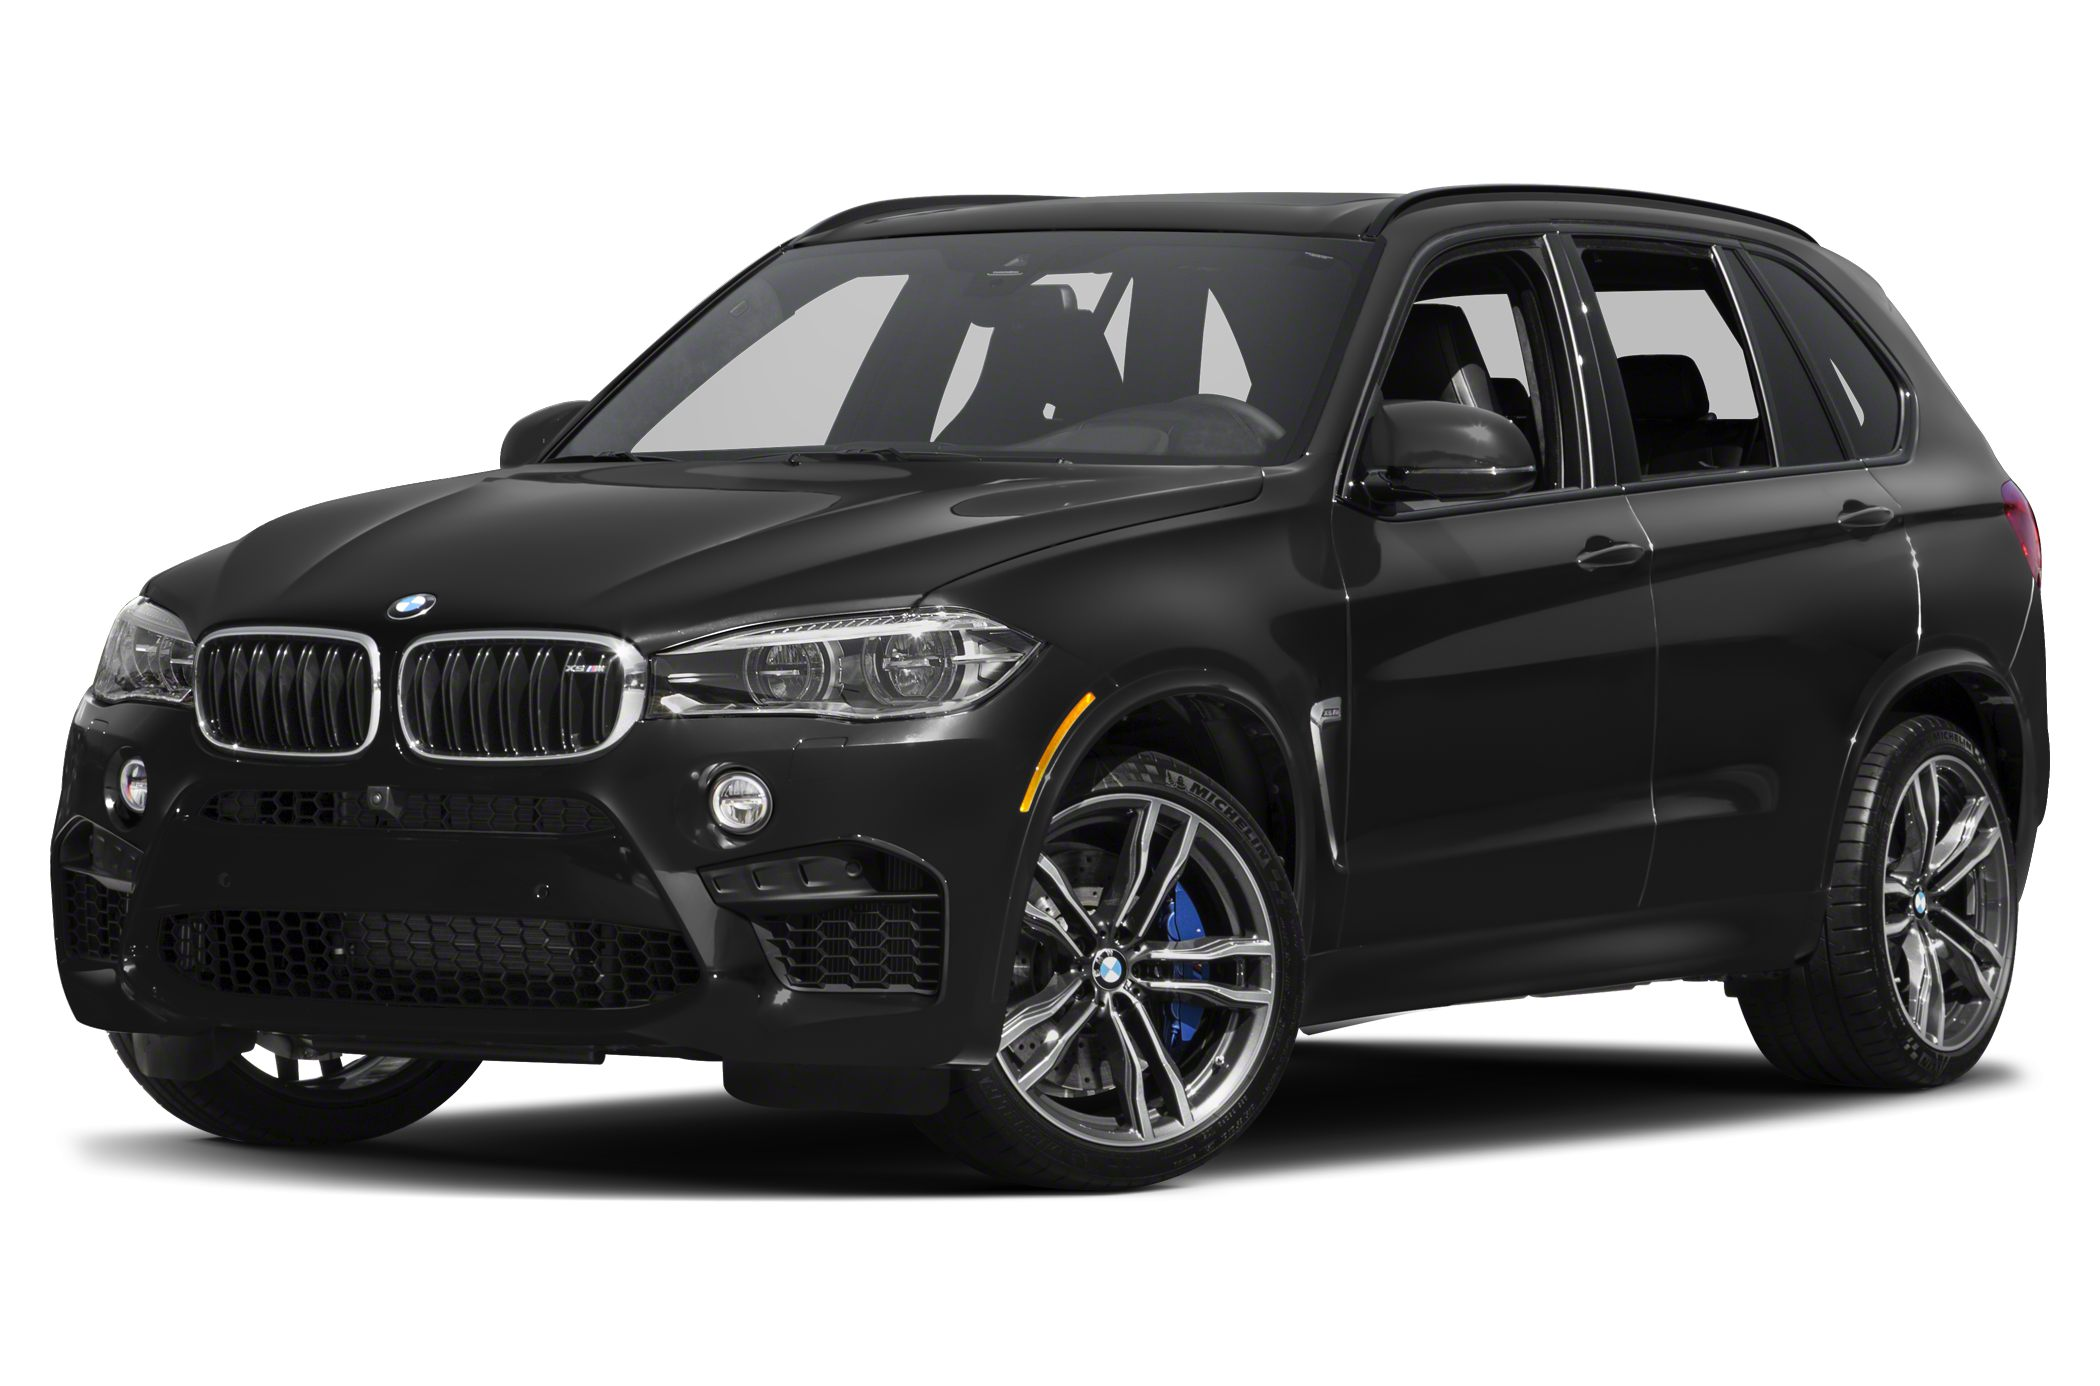 2015 BMW X5 M Specs Safety Rating & MPG CarsDirect